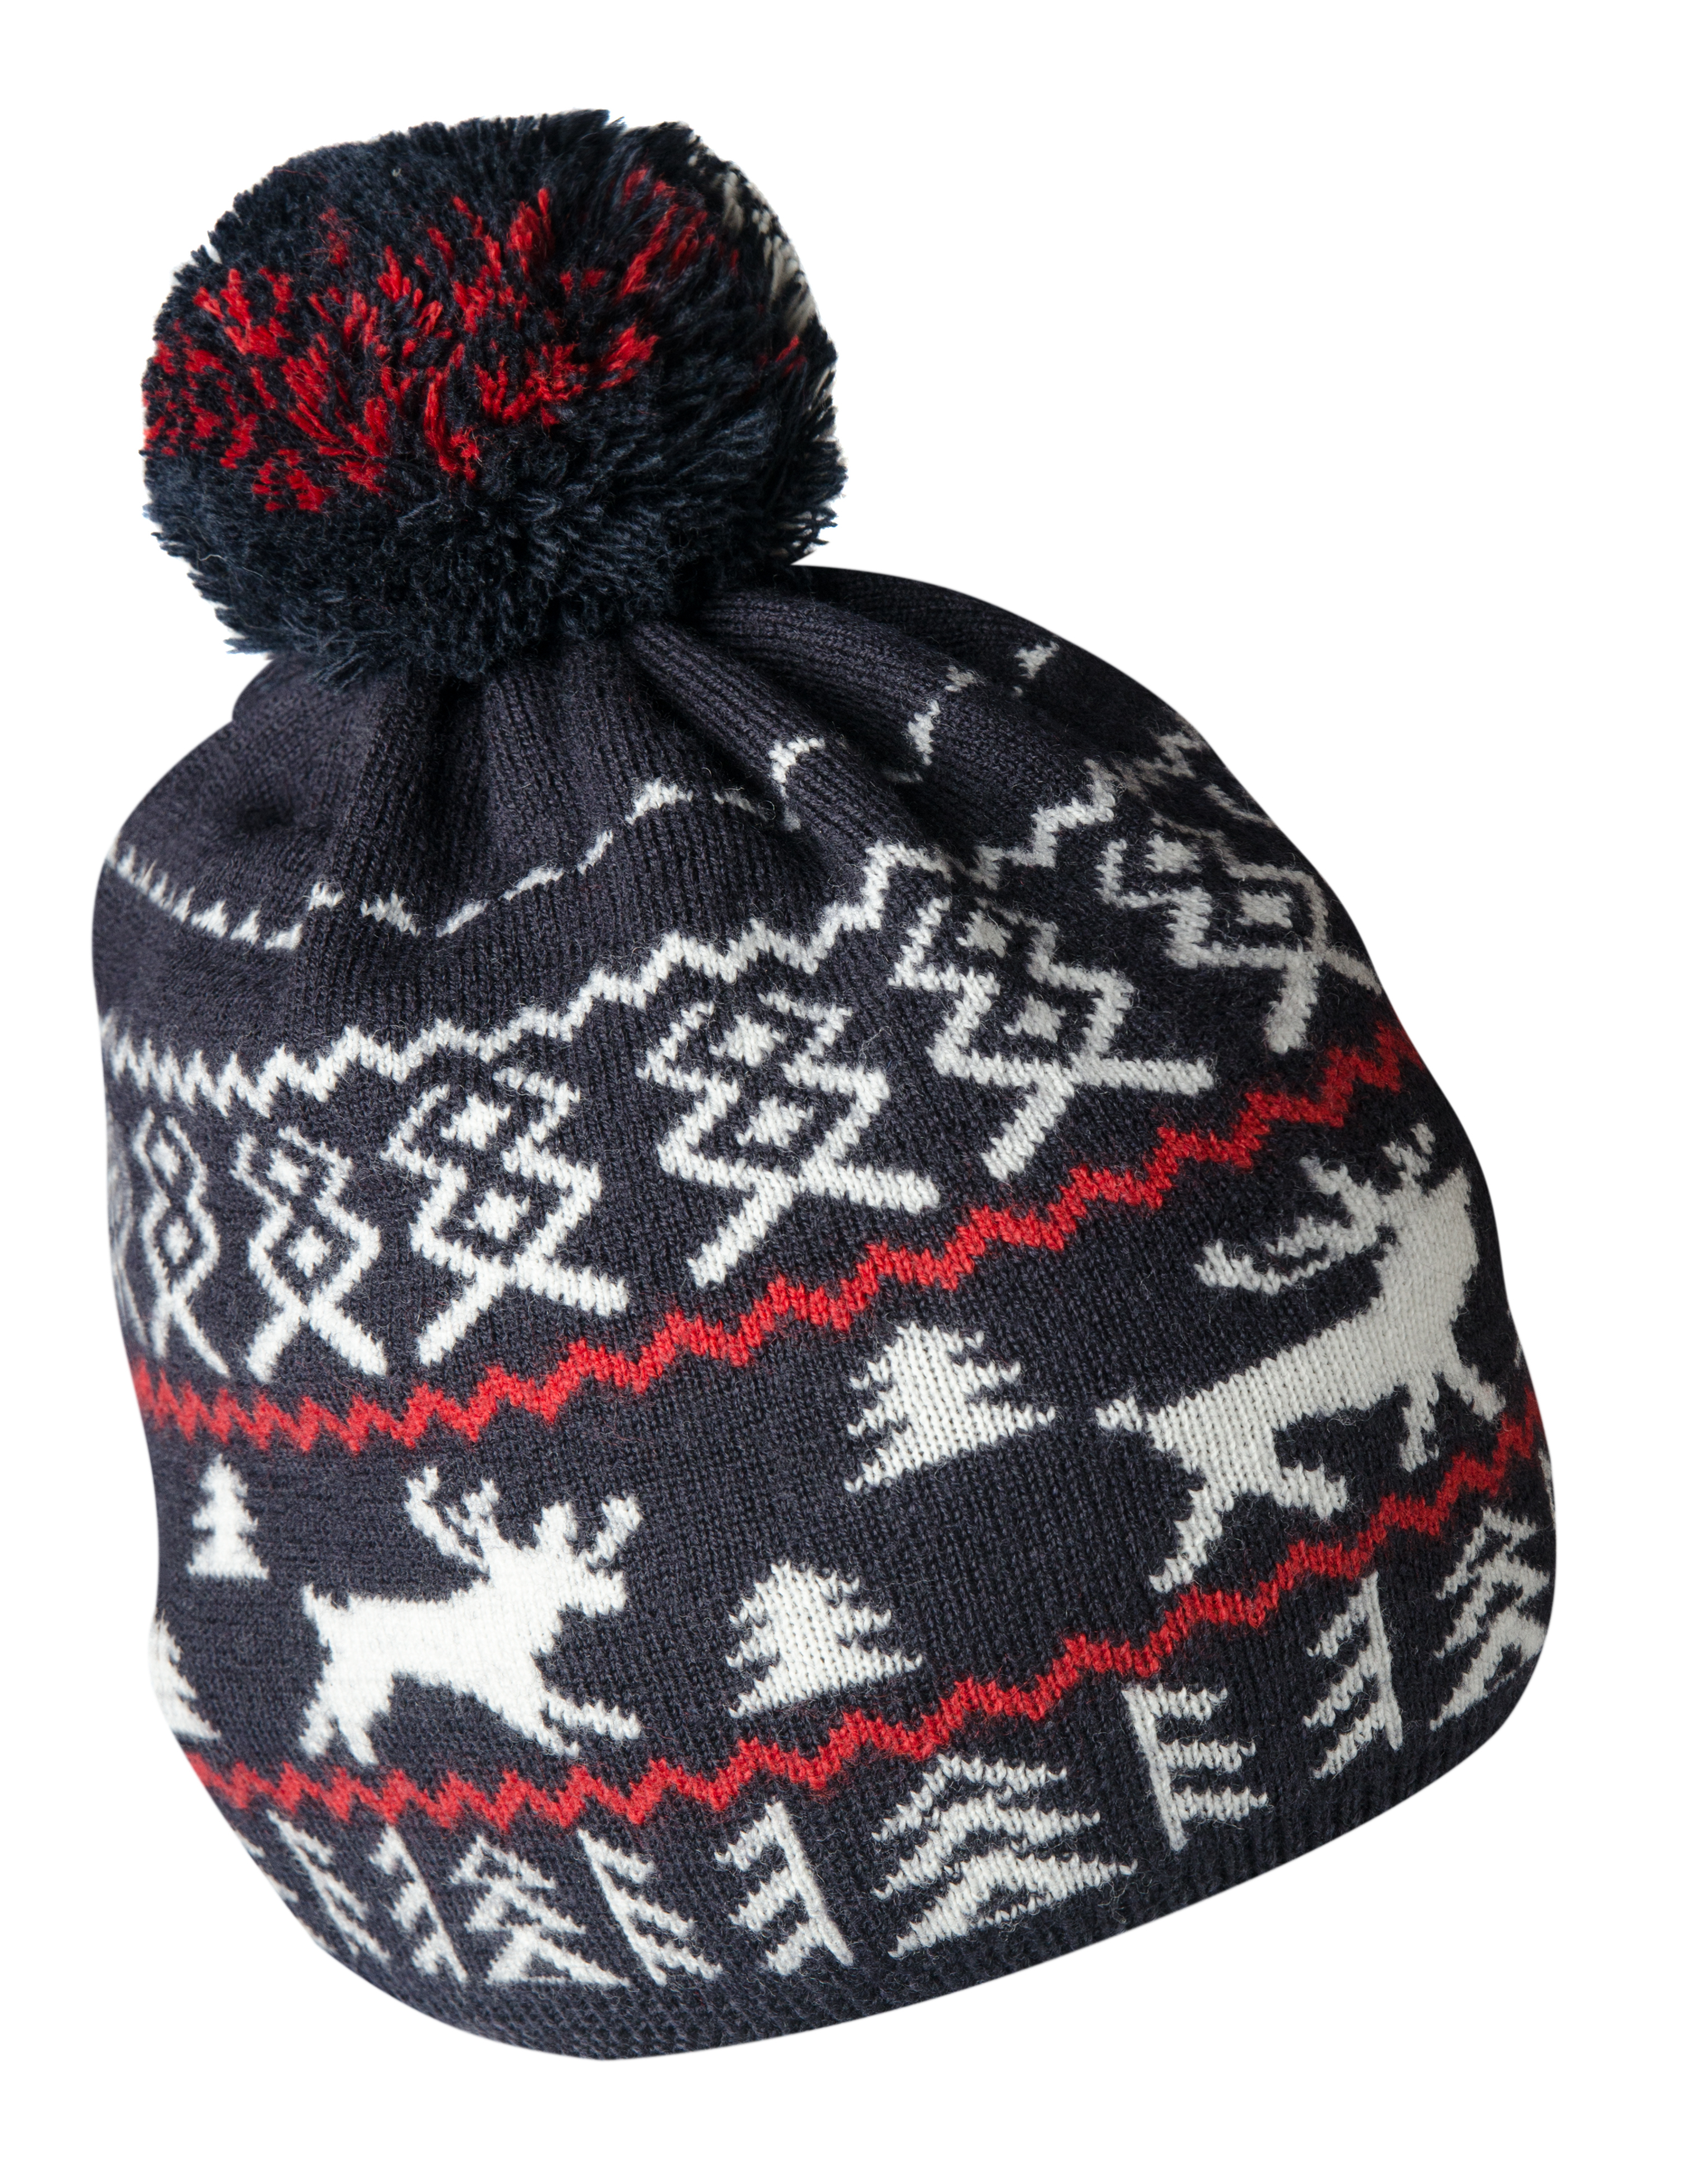 Custom made knitted hats (3)